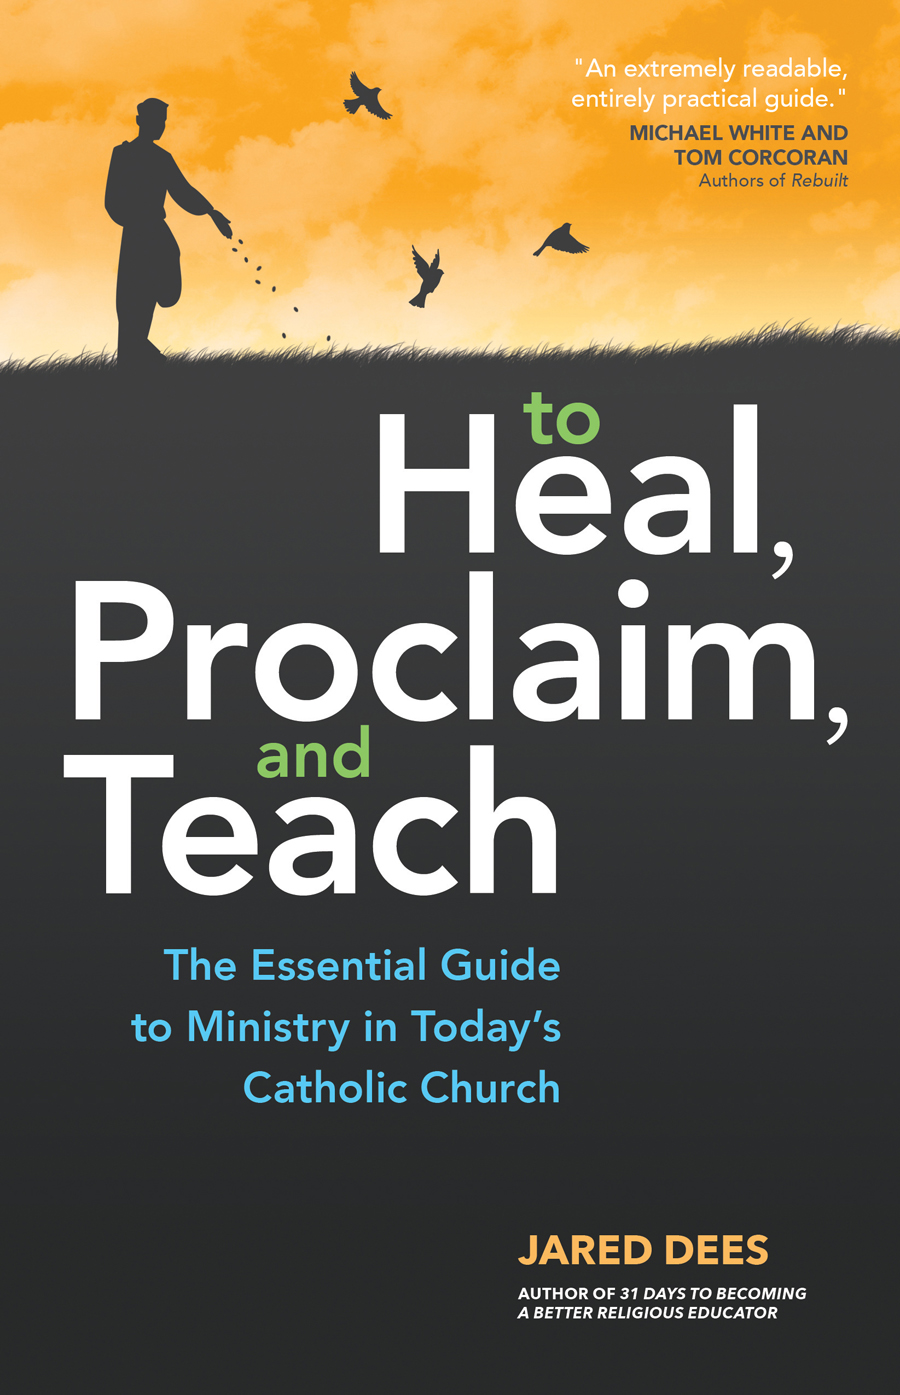 To Heal, Proclaim, and Teach